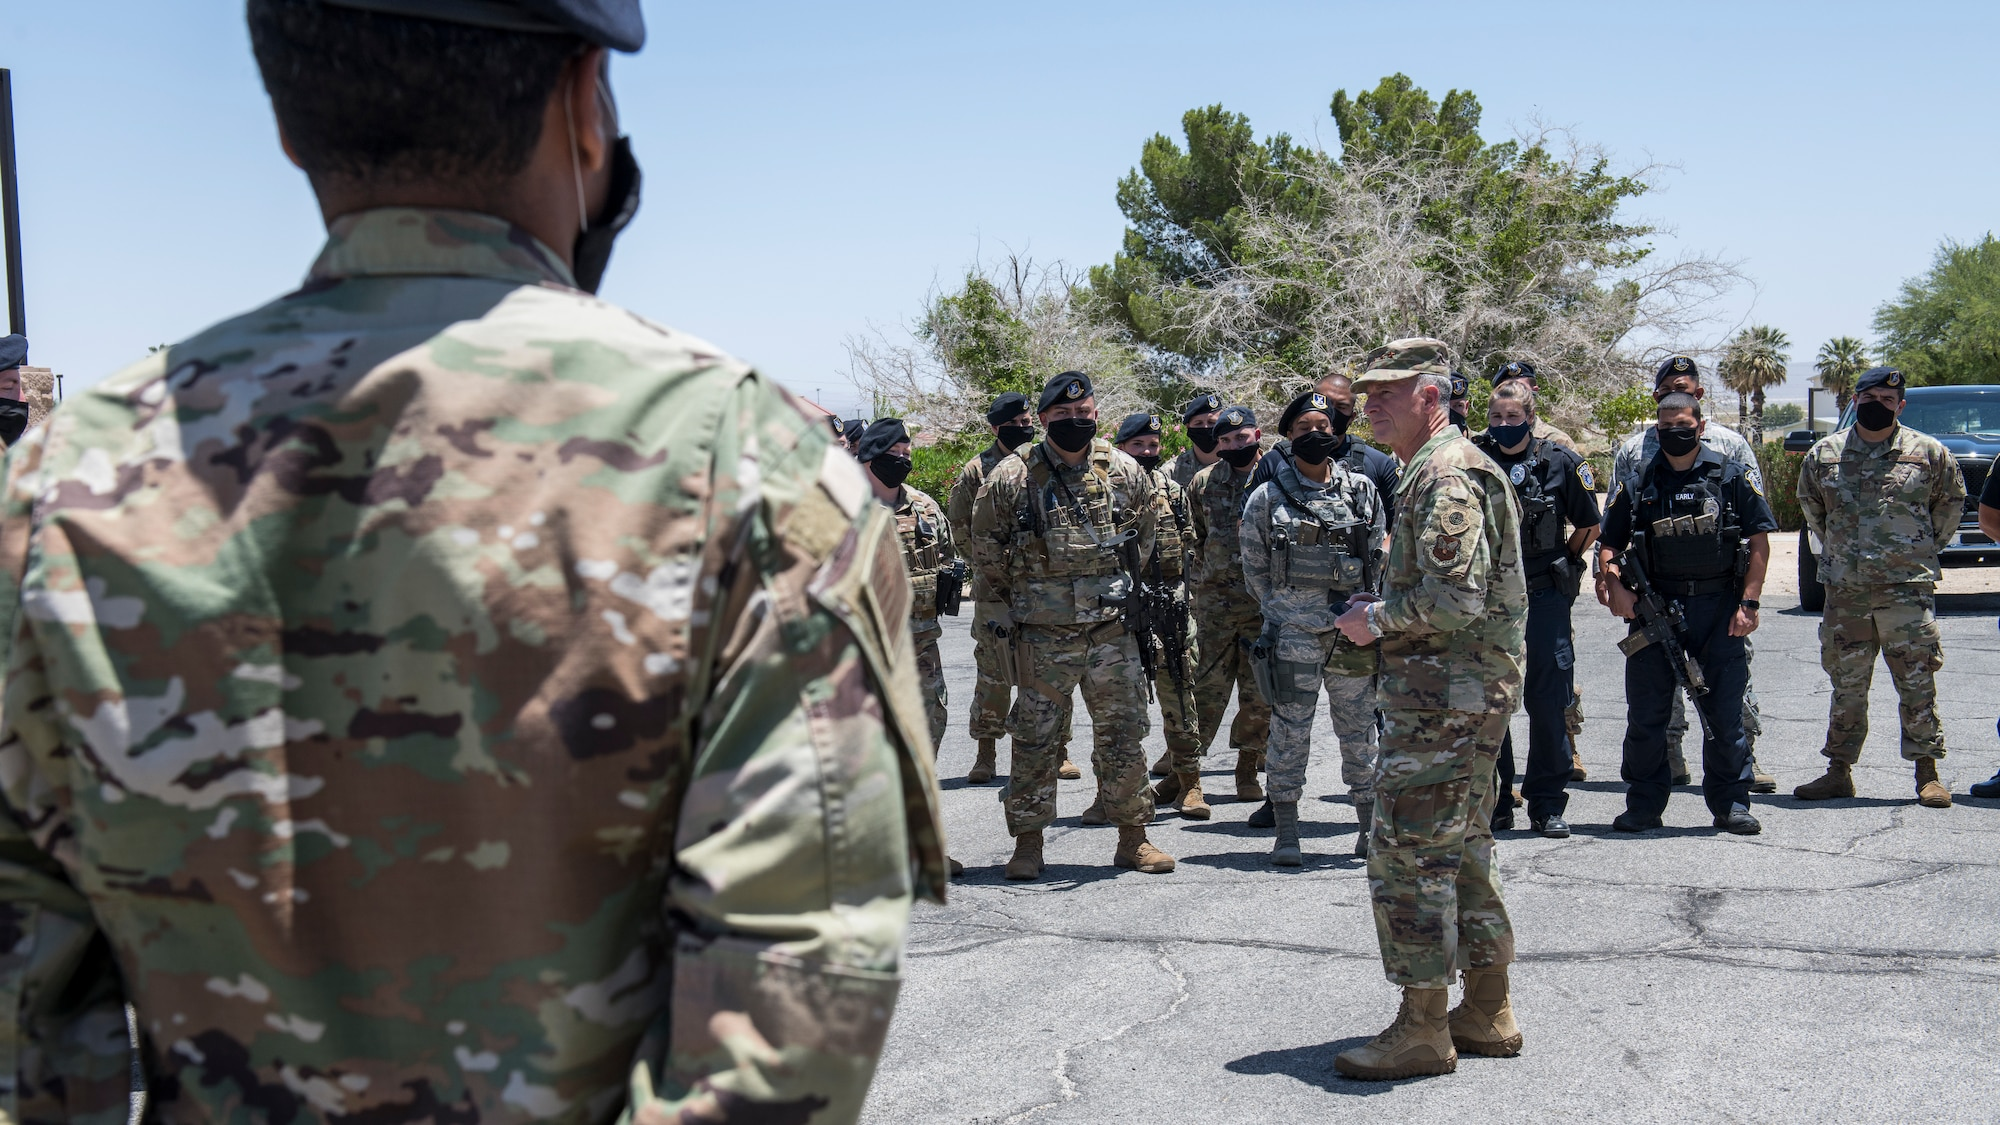 Air Force Chief of Staff Gen. David Goldfein talks to members of the 412th Security Forces Squadron prior to their Guard Mount procedures at Edwards Air Force Base, California, June 17. (Air Force photo by Giancarlo Casem)